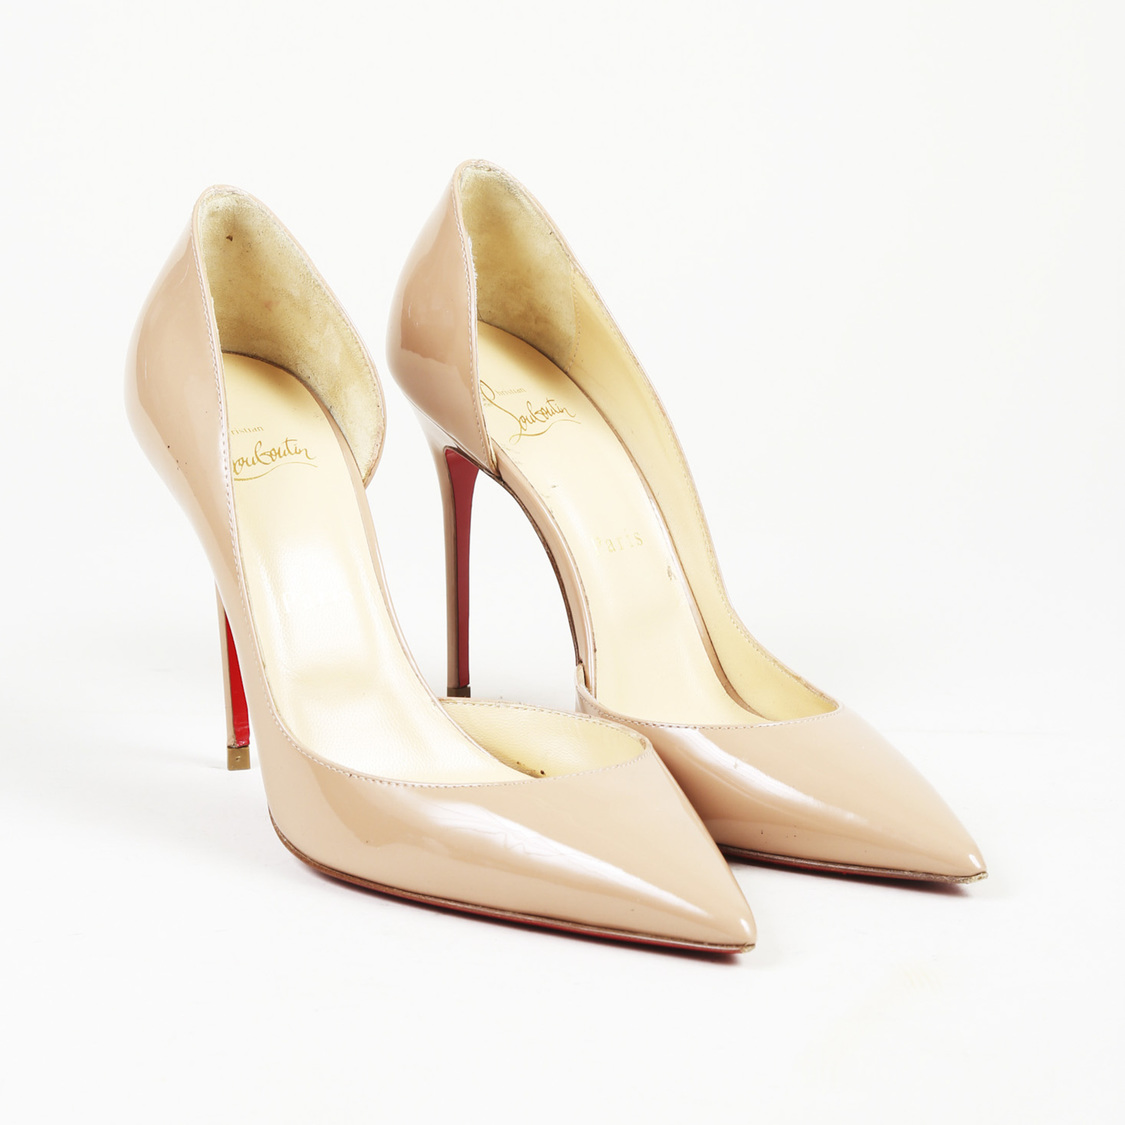 Details About Christian Louboutin Iriza 100 Patent Leather Half D Orsay Pumps Sz 38 5